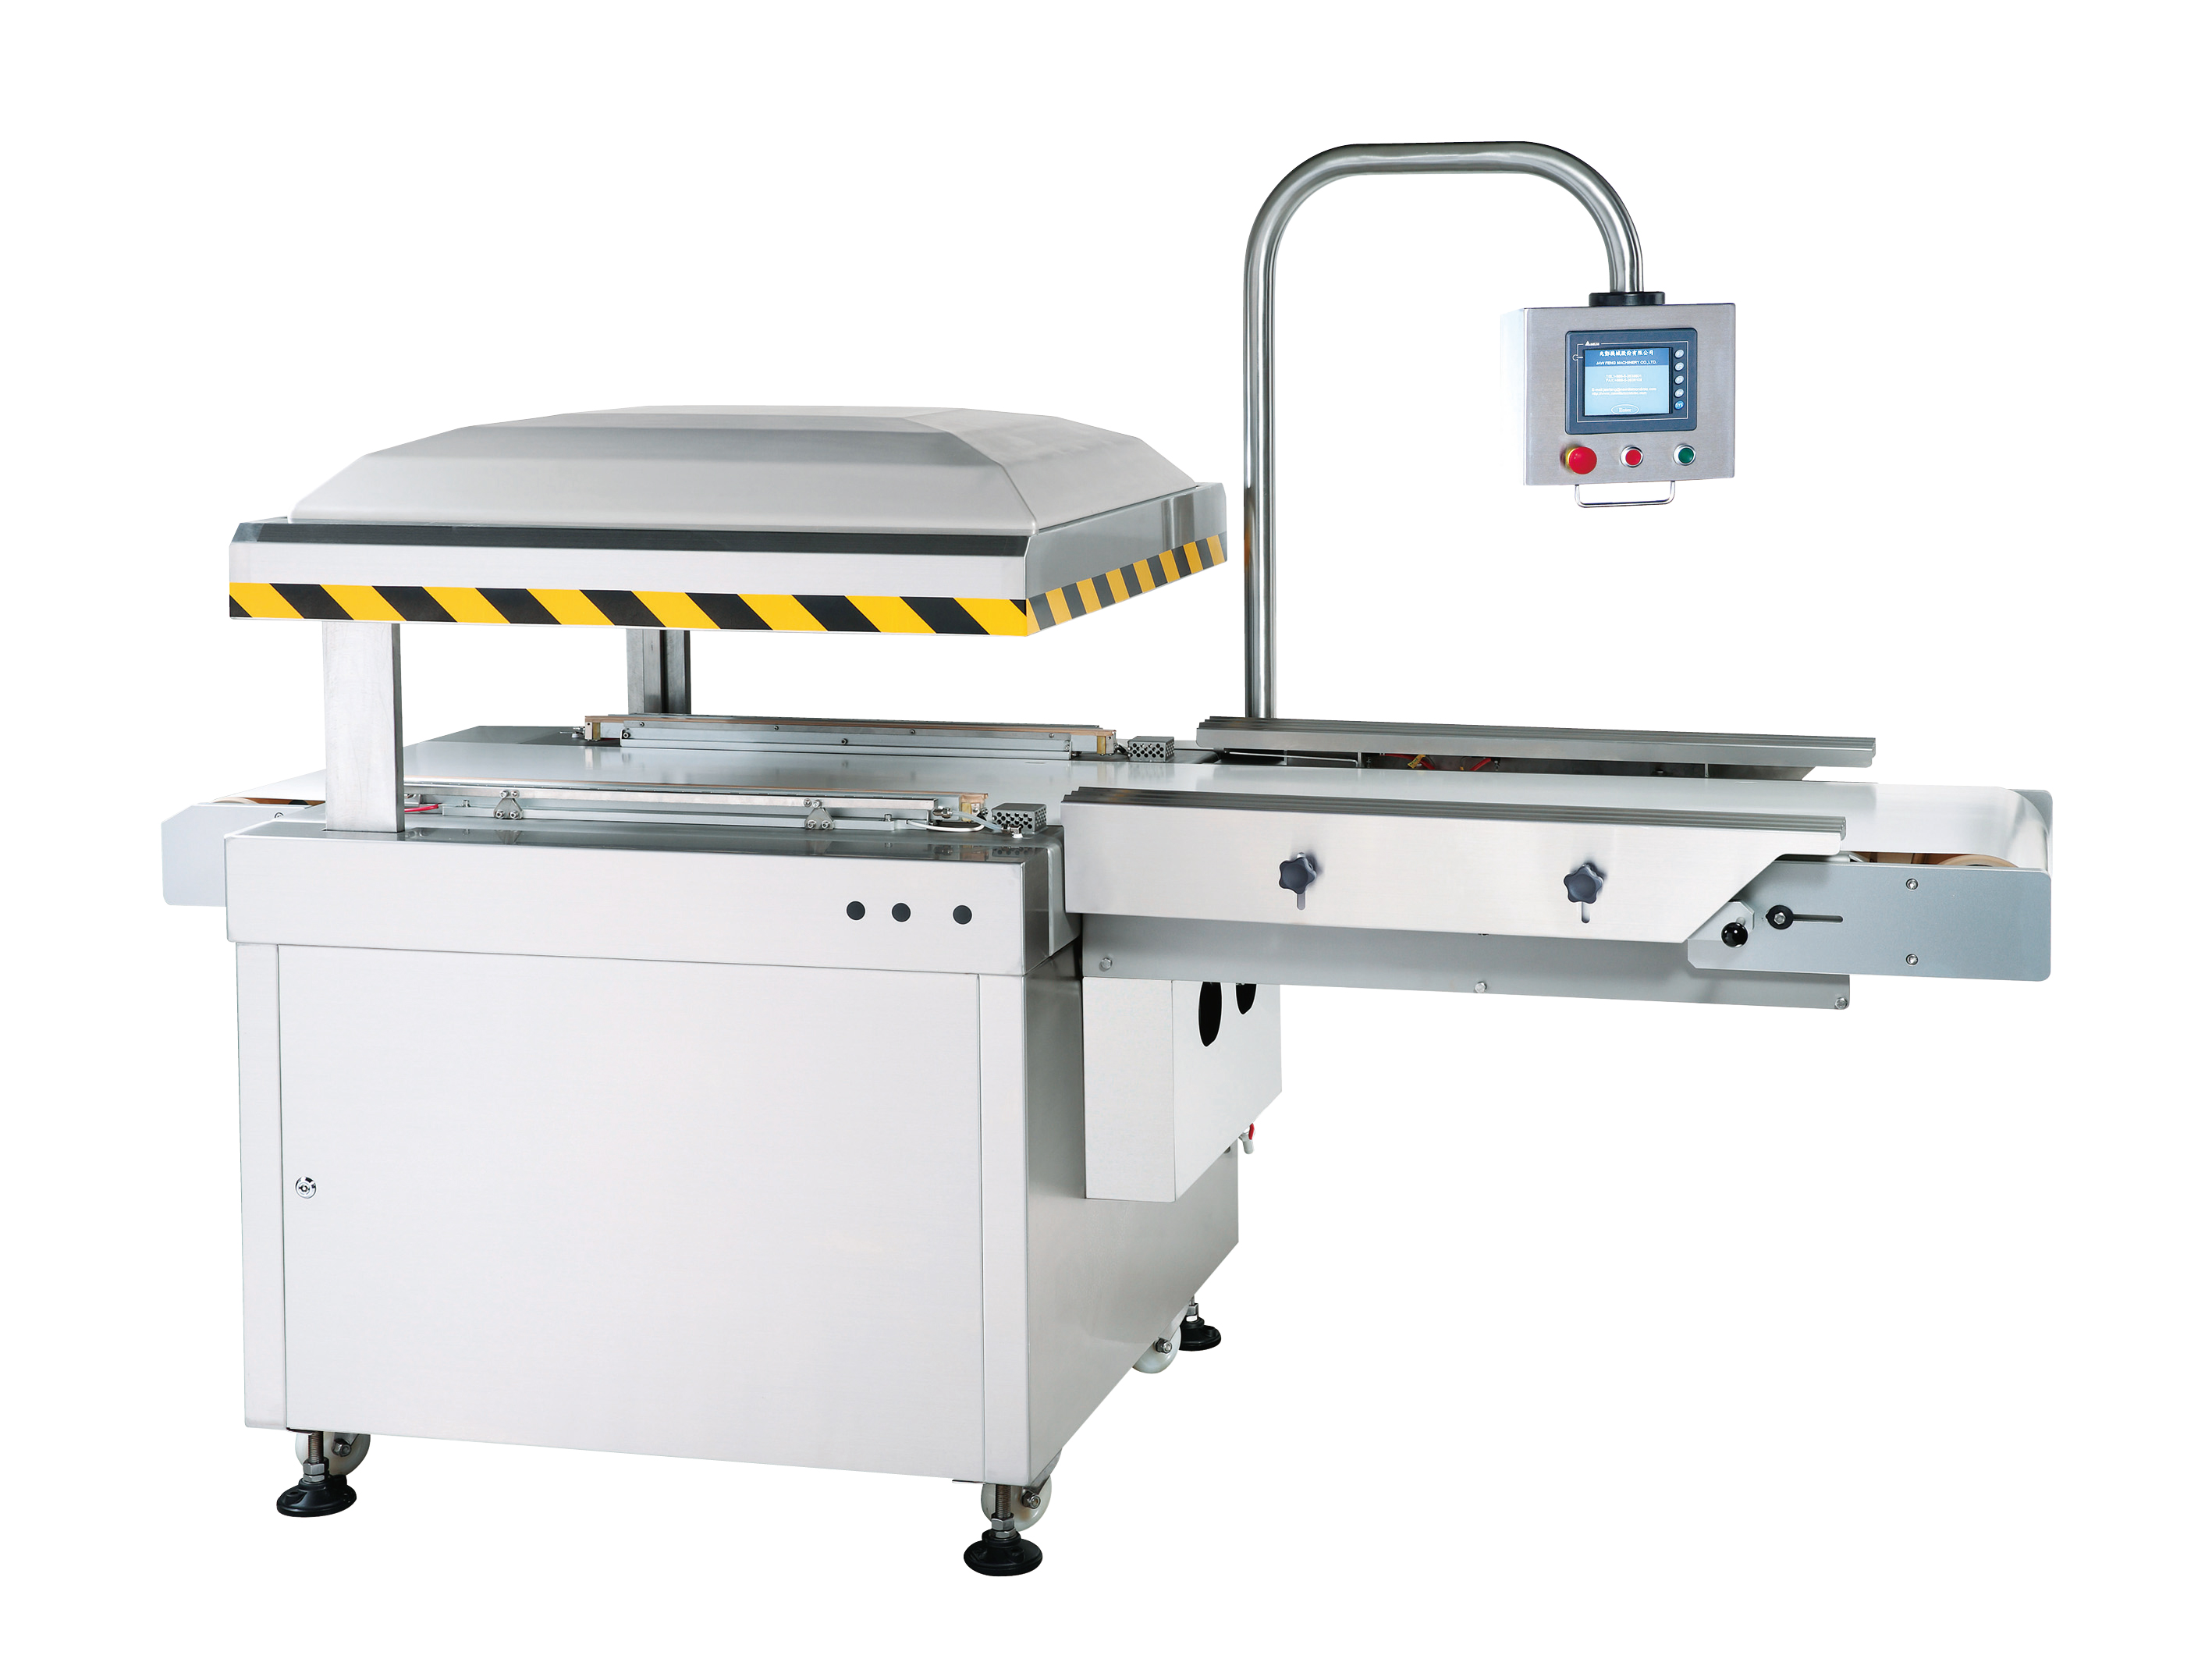 Automatic In Line Belt Type Vacuum Packaging Machine - J-V033LCA. Automatic In Line Belt Type Vacuum Packaging Machine